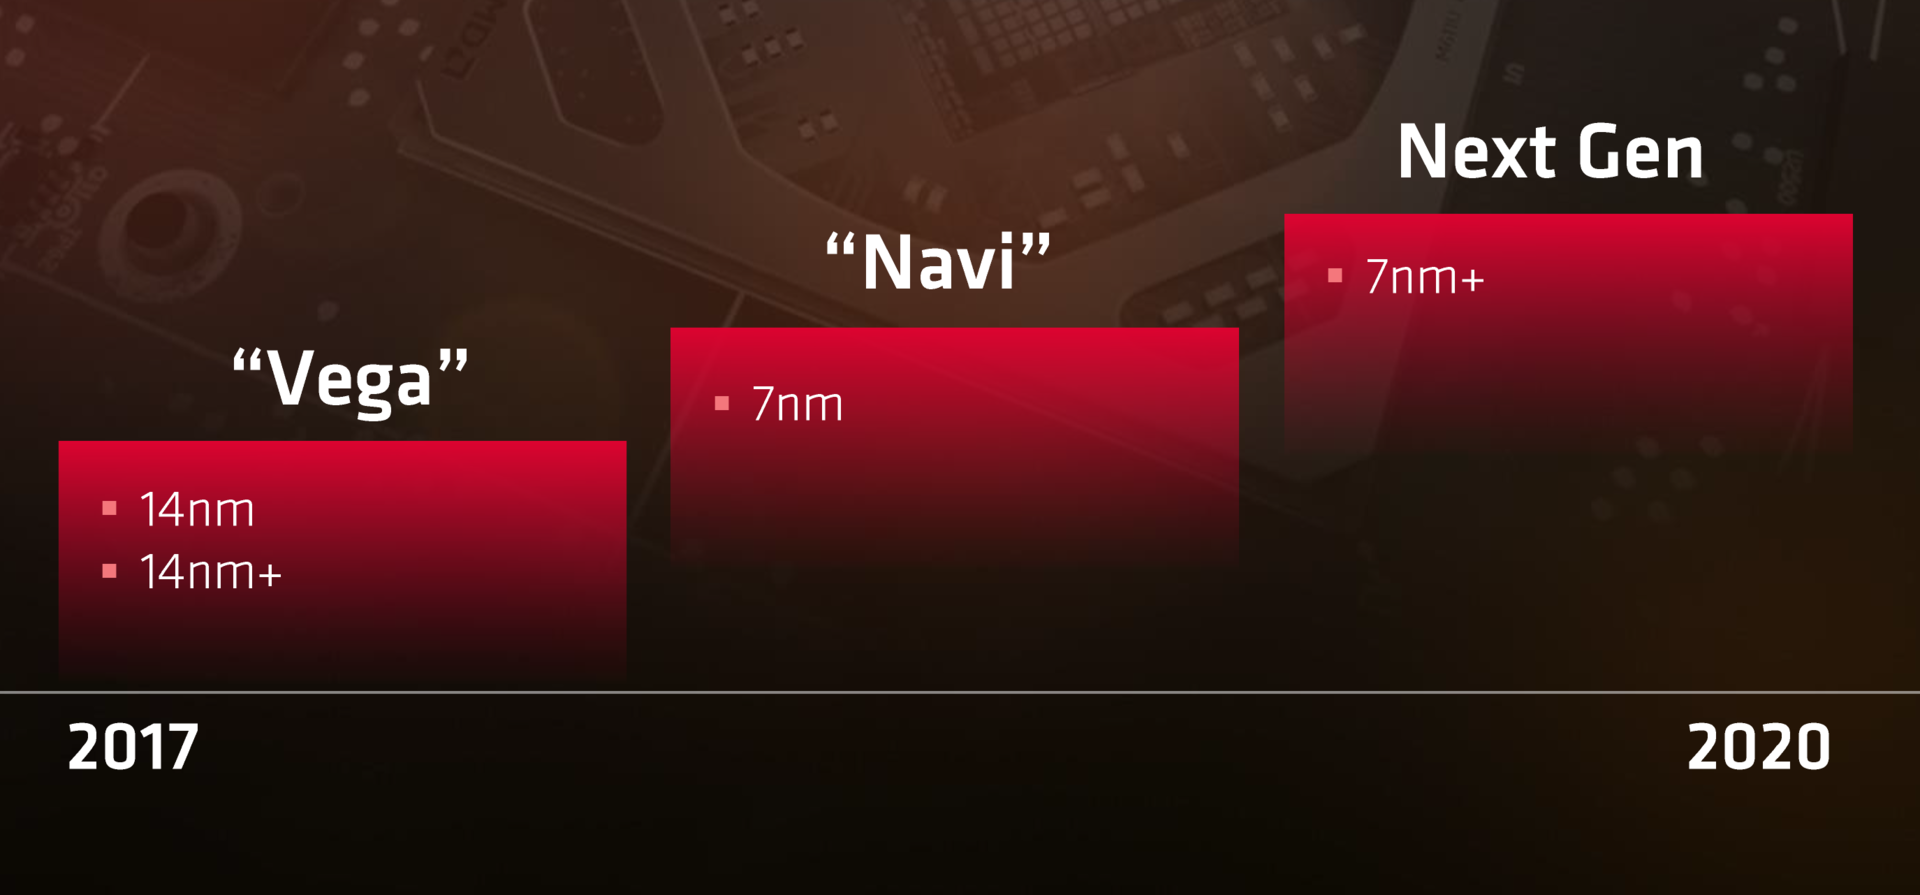 Driver code confirms AMD's Navi GPU series will be based on